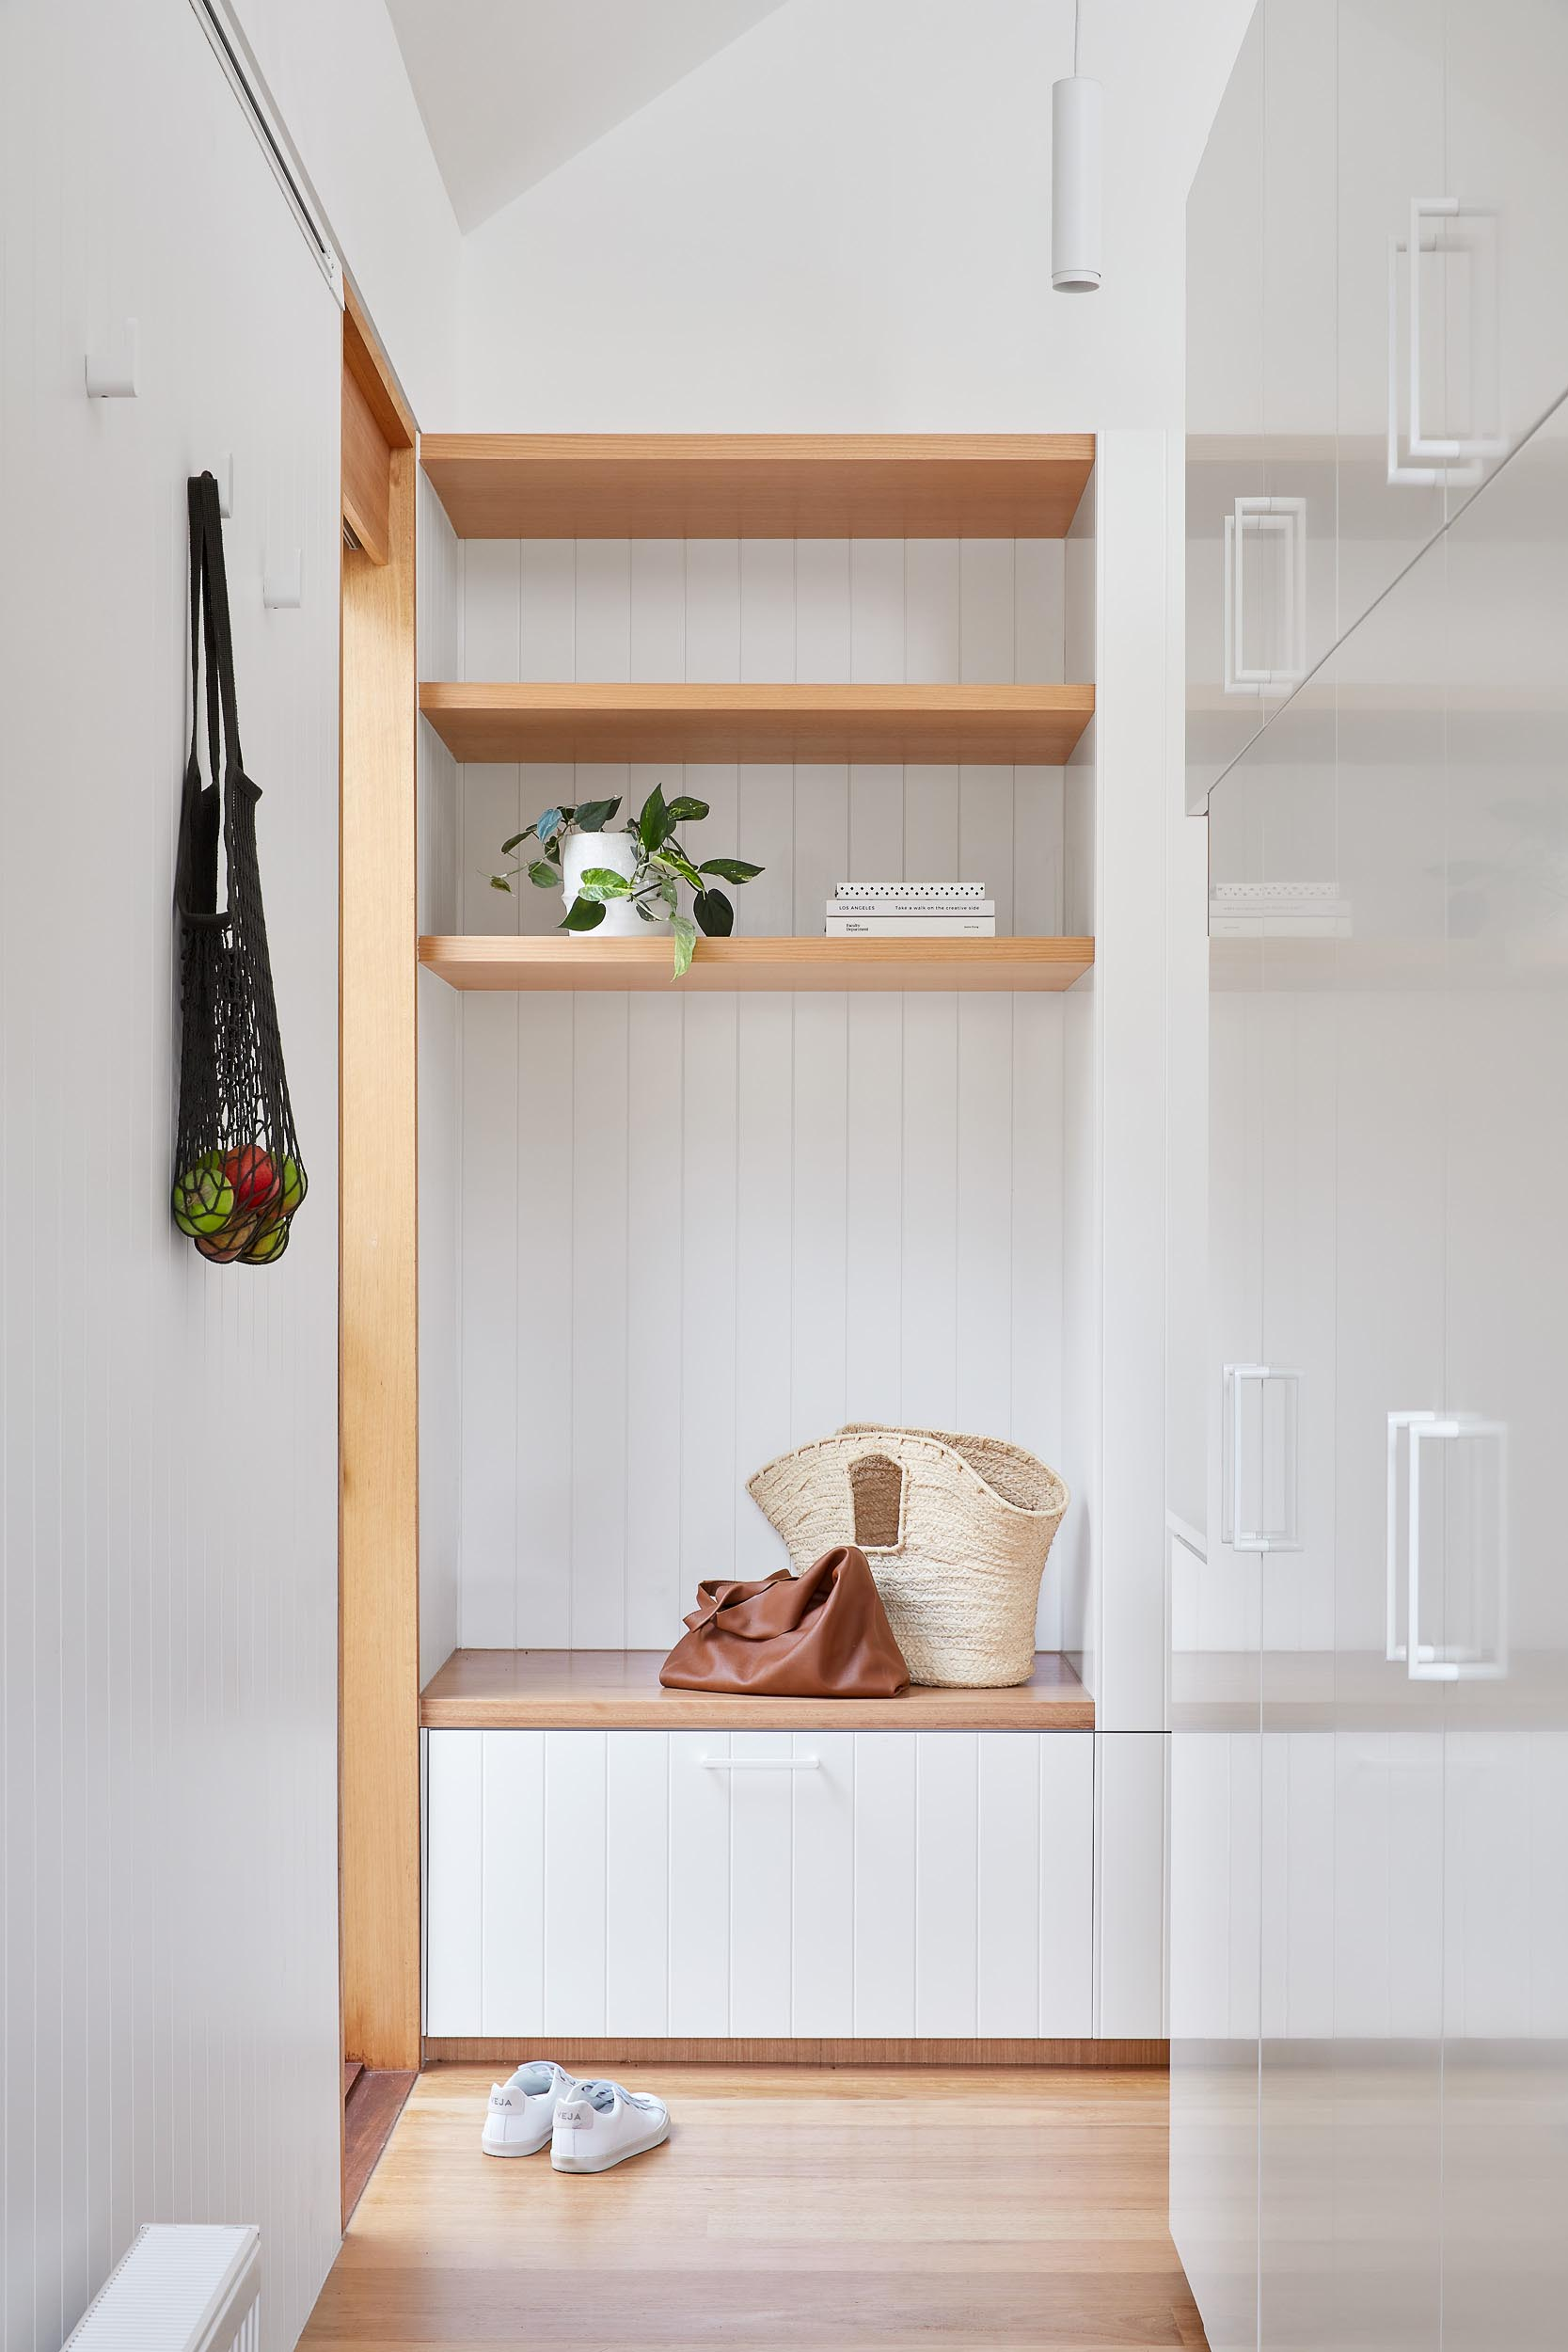 A laundry room behind the kitchen includes a wood bench and open shelving.